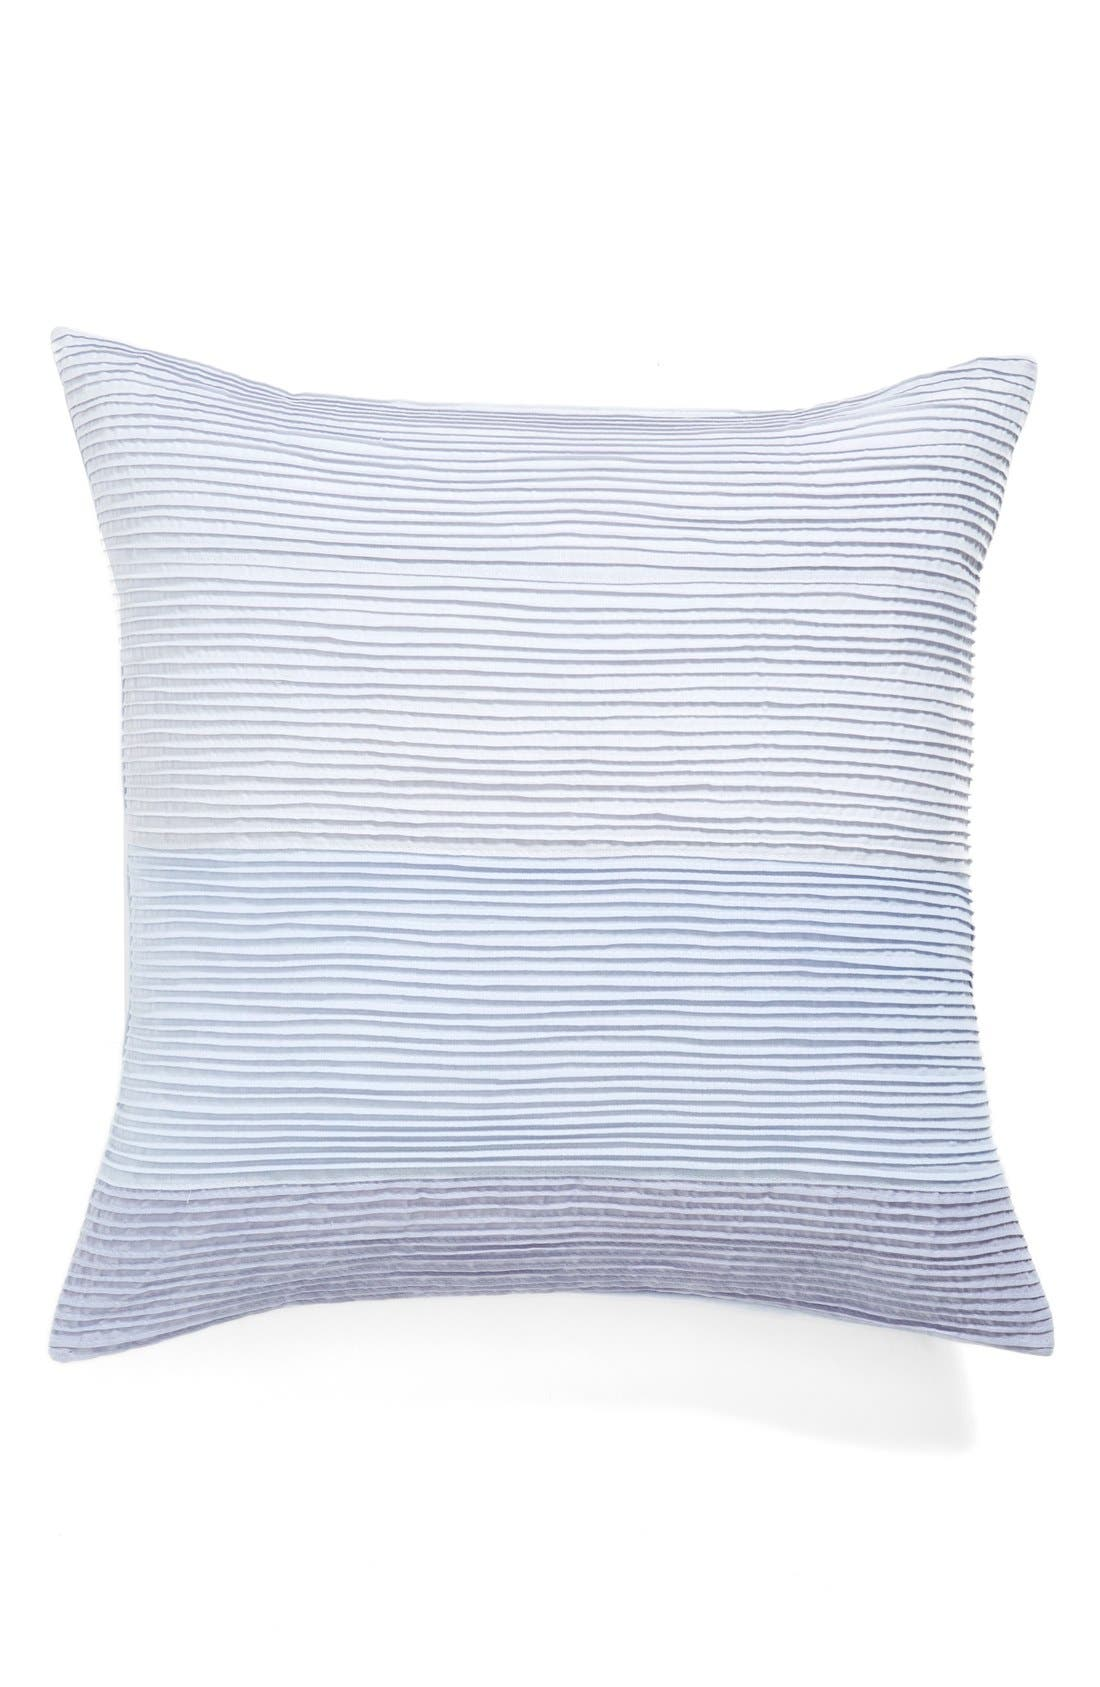 Alternate Image 1 Selected - Vera Wang 'Scrolls' Tucked Pillow